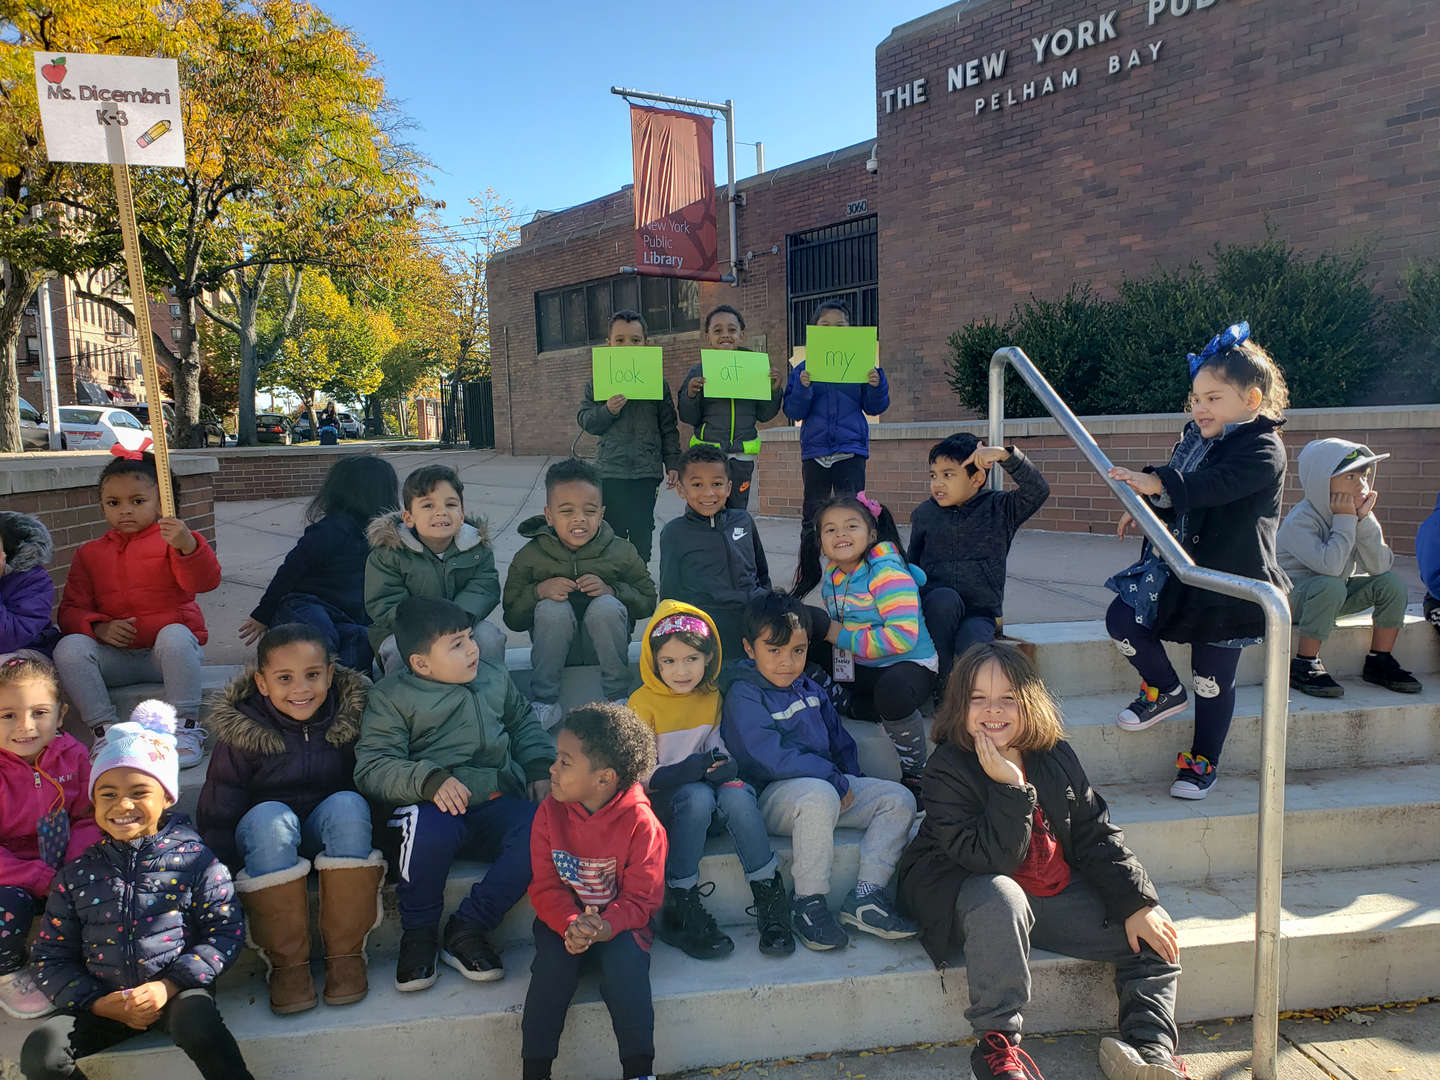 Kindergarten students partake in a community walk while using site words to describe what they see